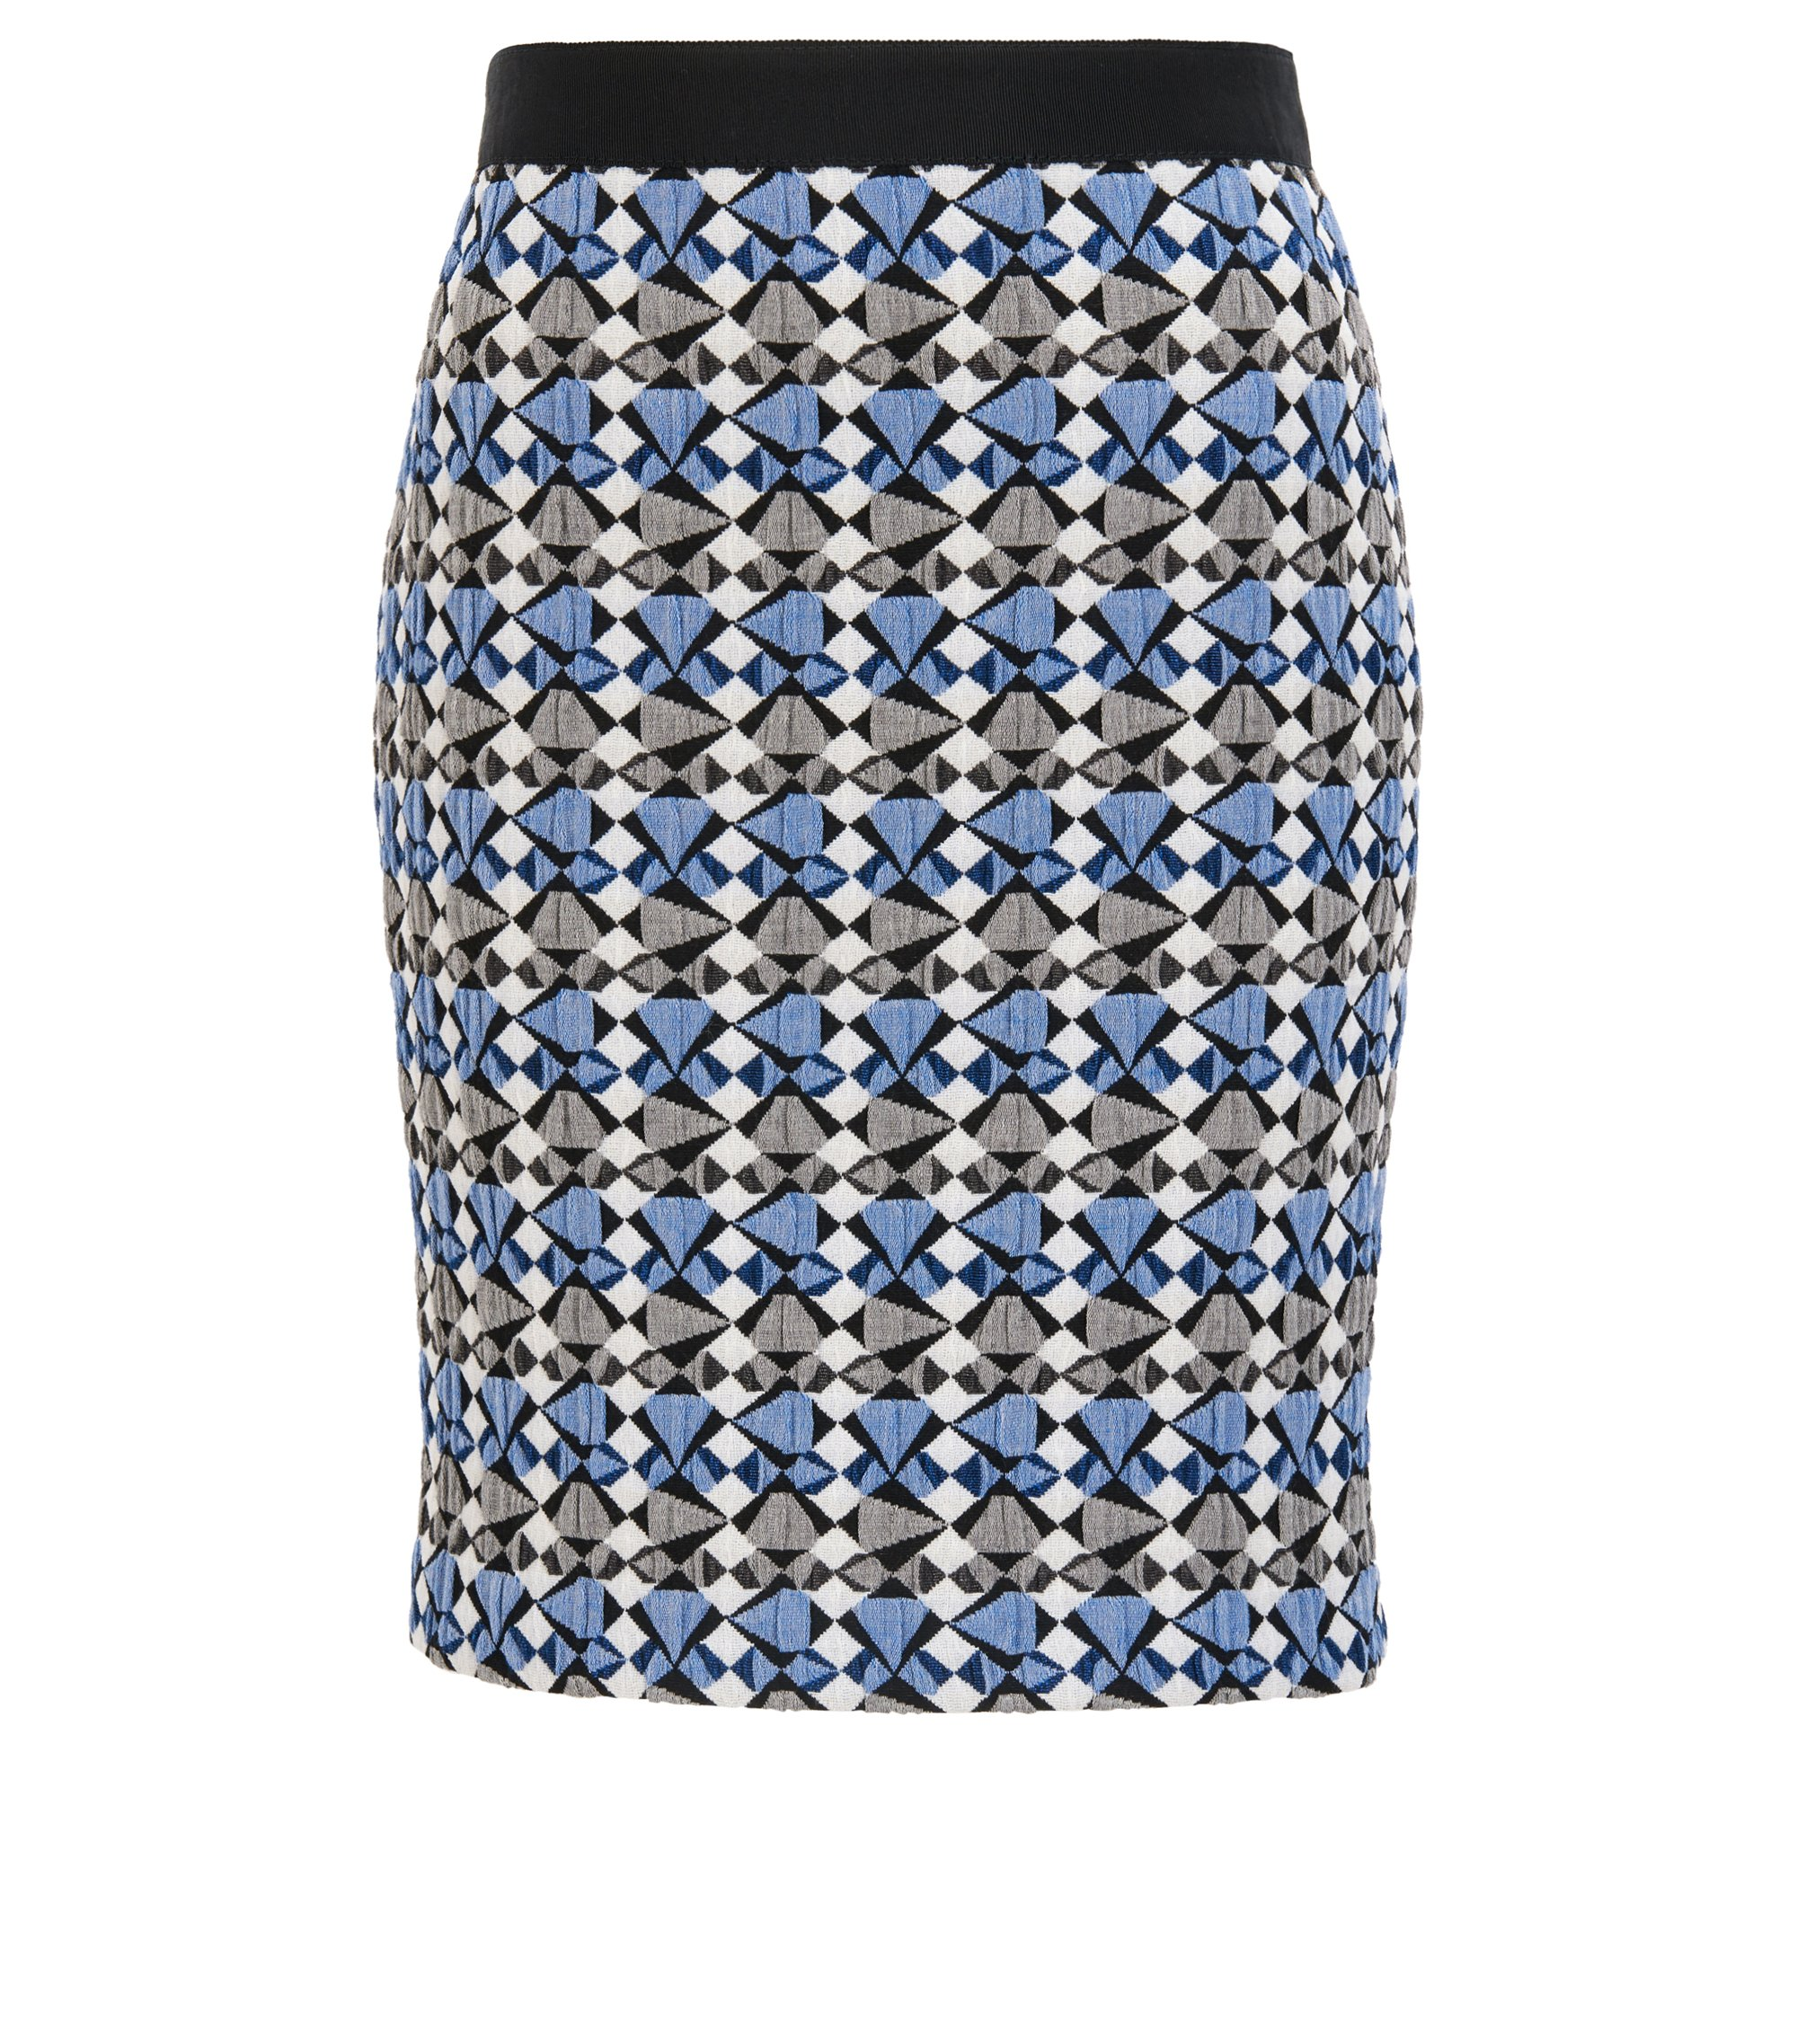 Pencil skirt in multicoloured stretch jacquard, Gemustert